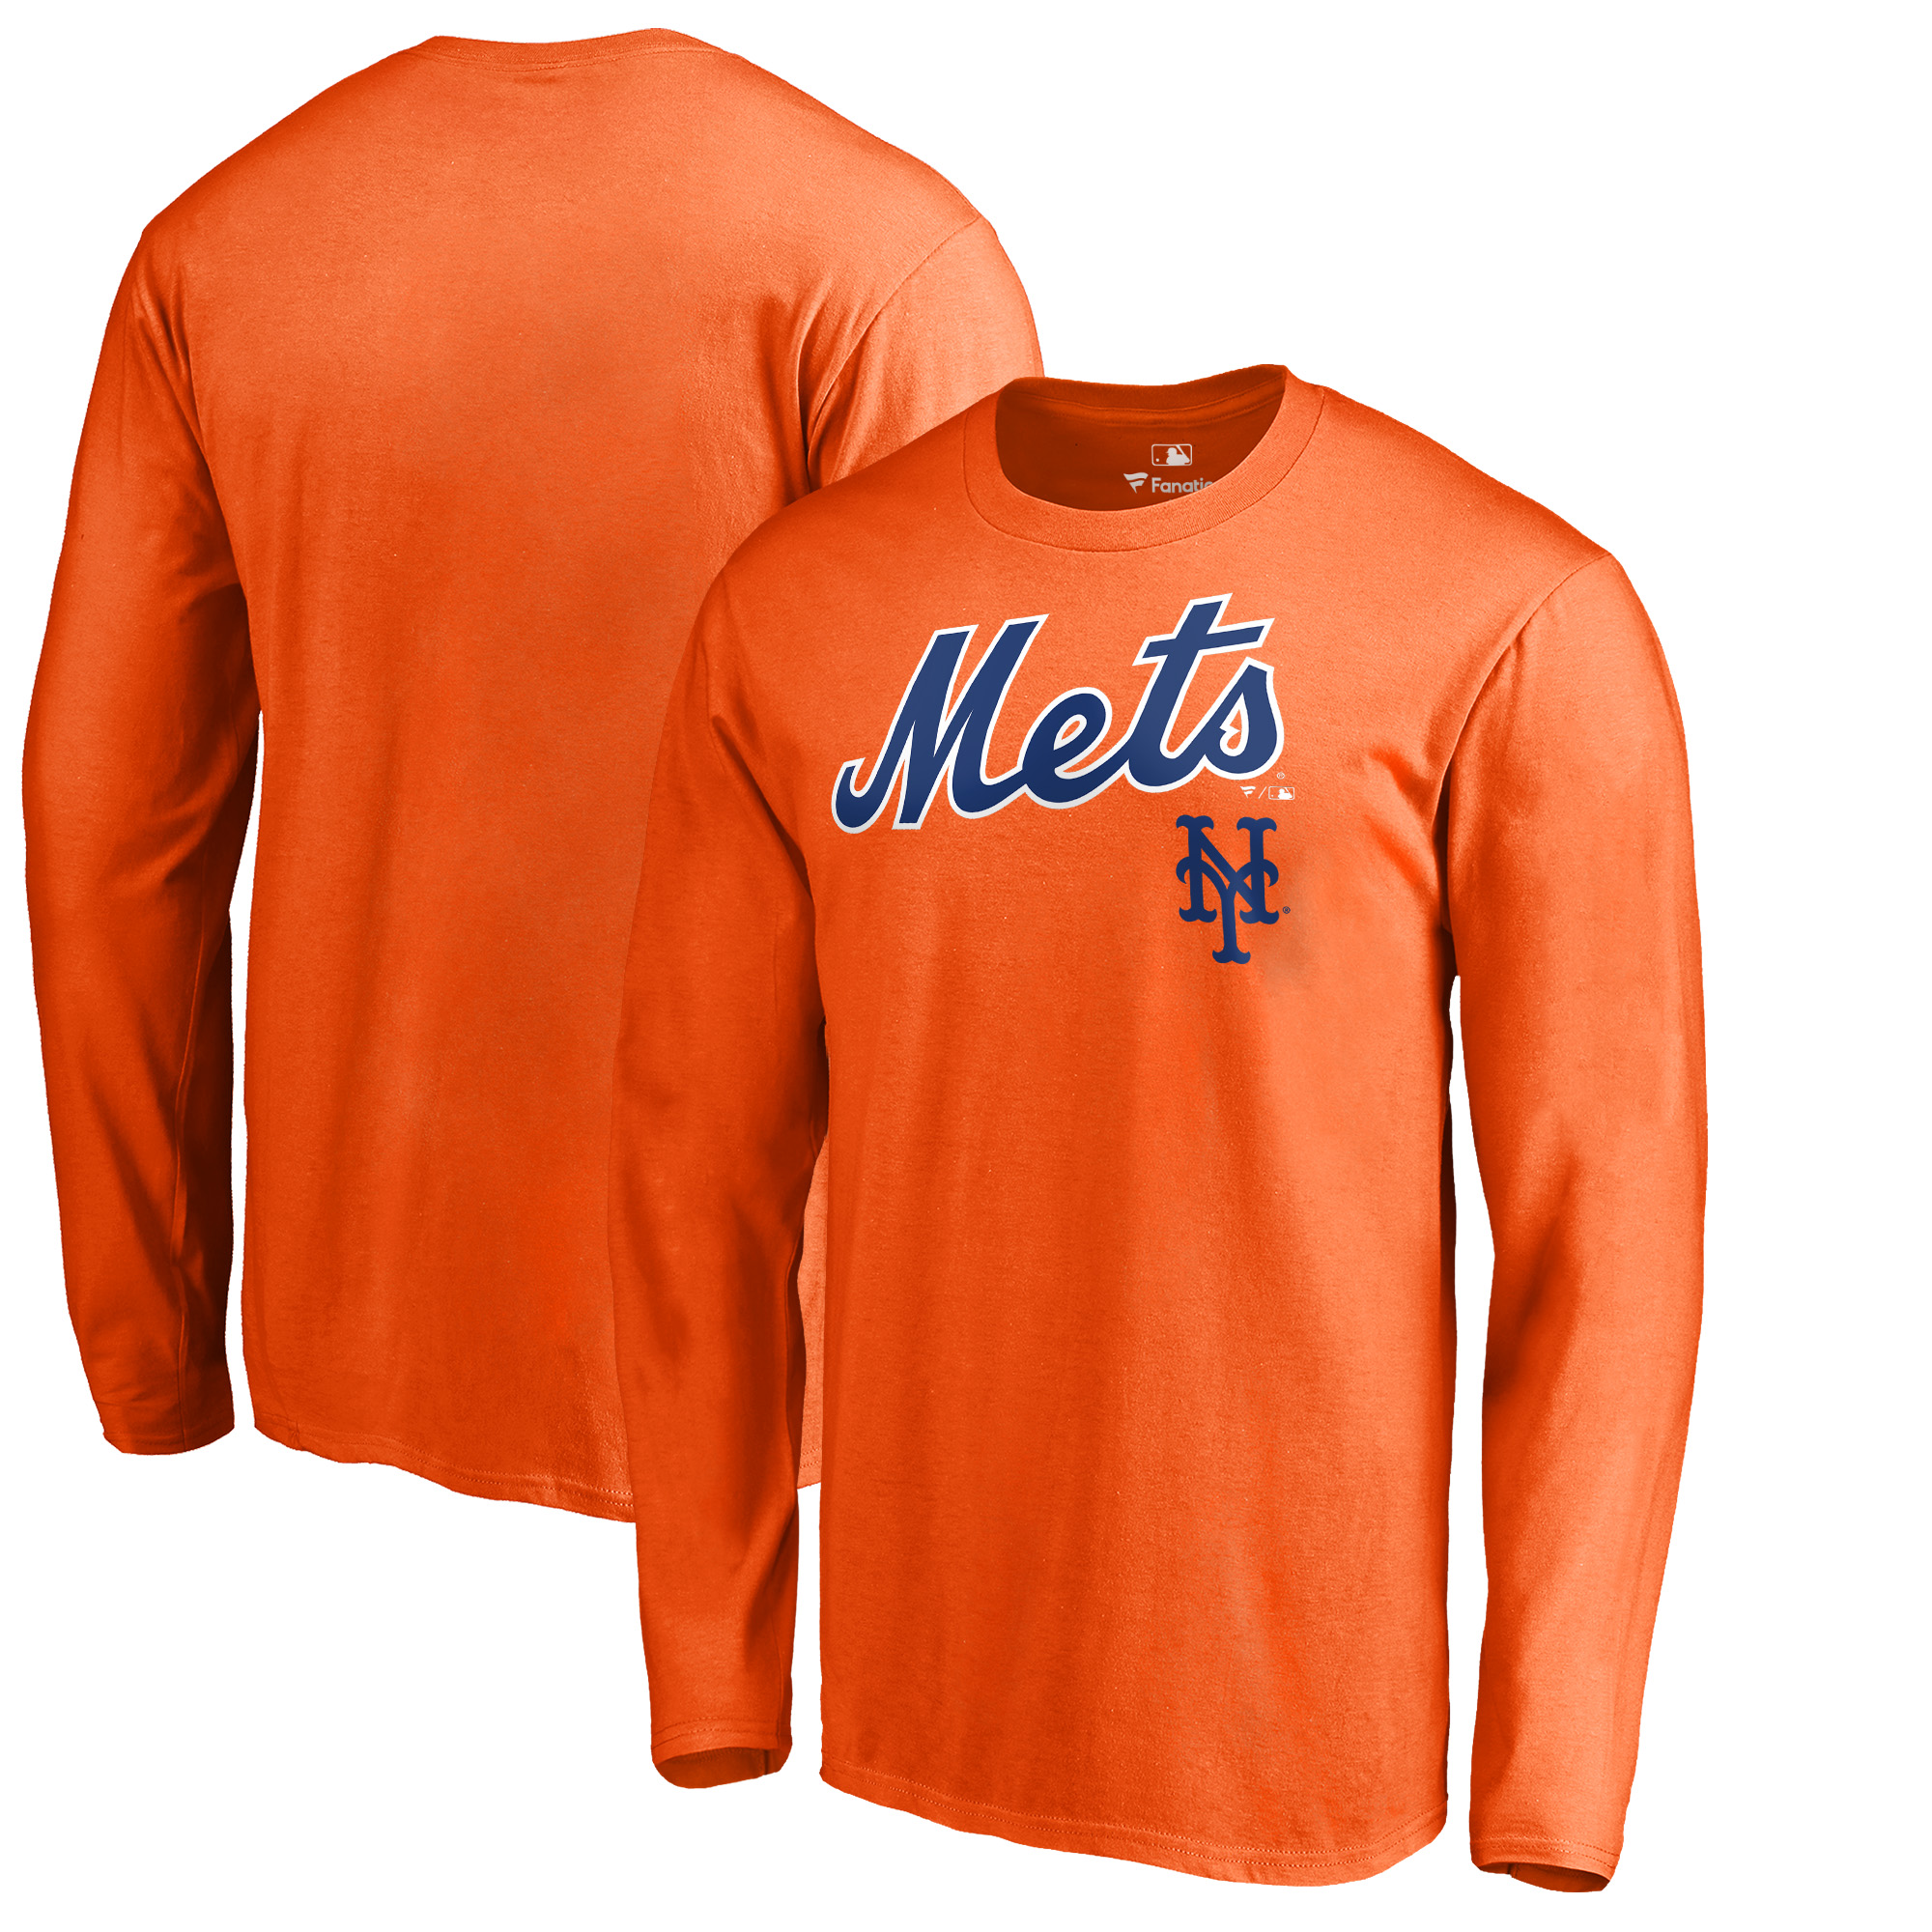 New York Mets Fanatics Branded Big & Tall Team Lockup Long Sleeve T-Shirt - Orange